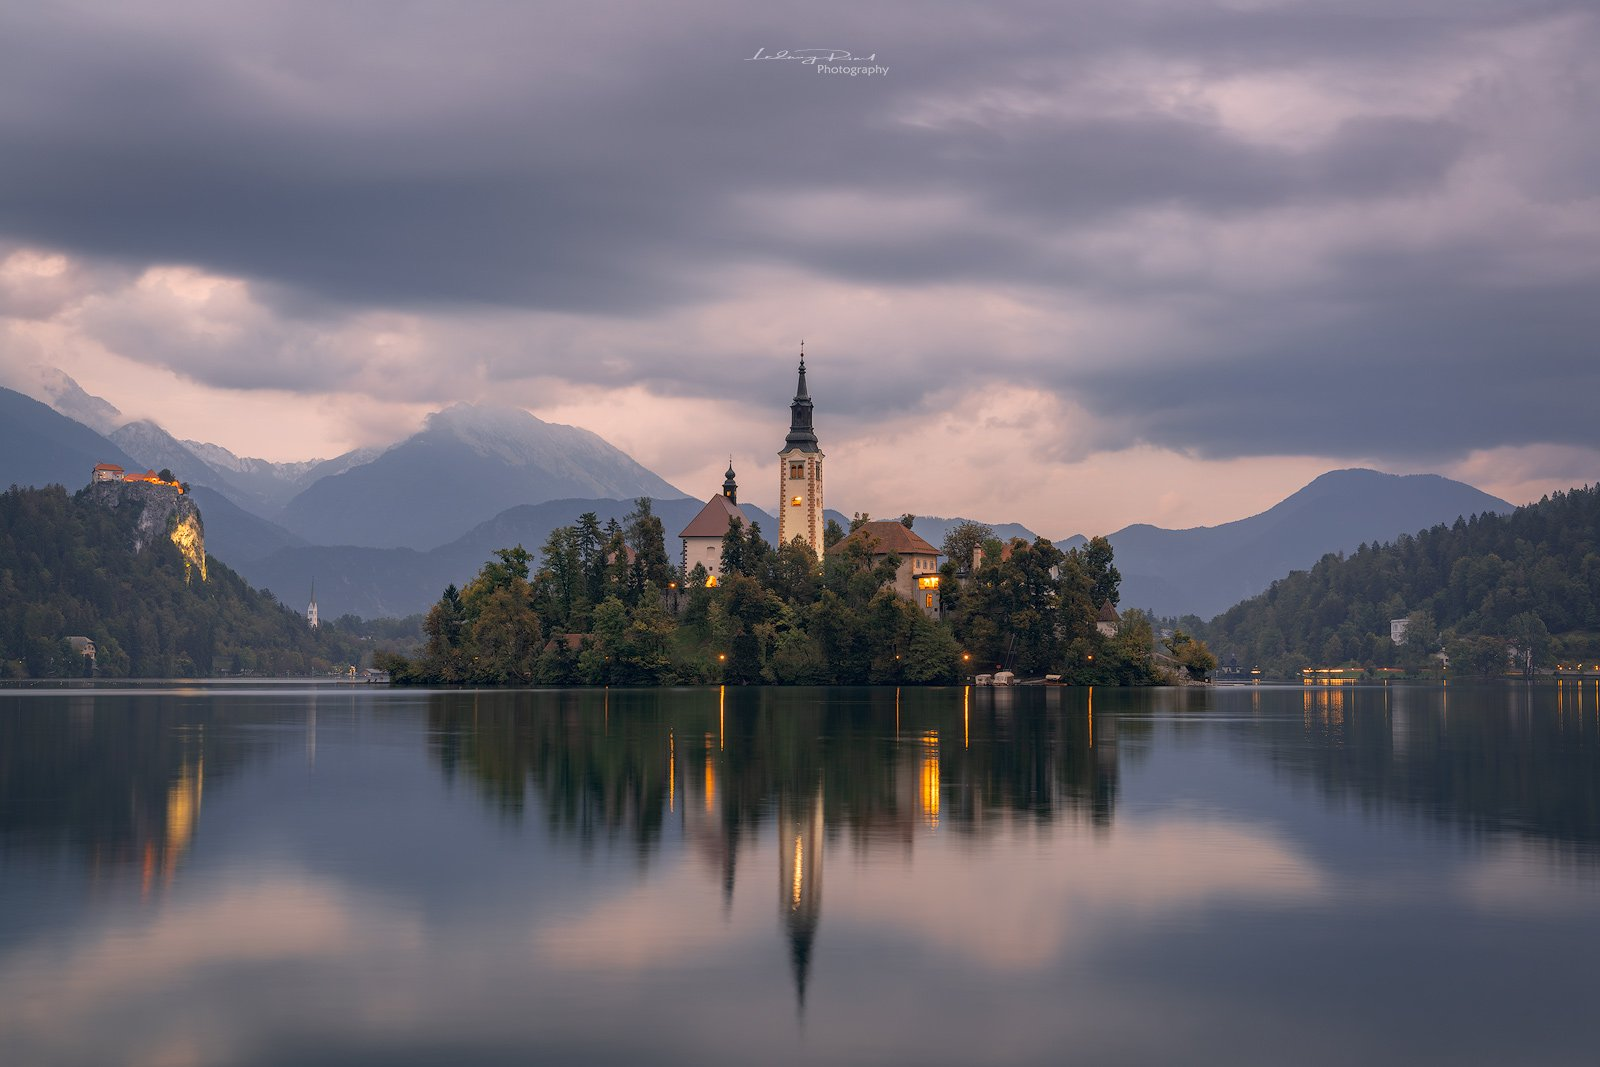 bled, blue, blue hour, calm waters, calmness, castle, church, church tower, cliff, clouds, evening, fog, forest, hills, island, lake, lake bled, lights, mountain range, mountains, reflections, rock, serenity, silence, sky, slovenia, tower, twilight, water, Ludwig Riml